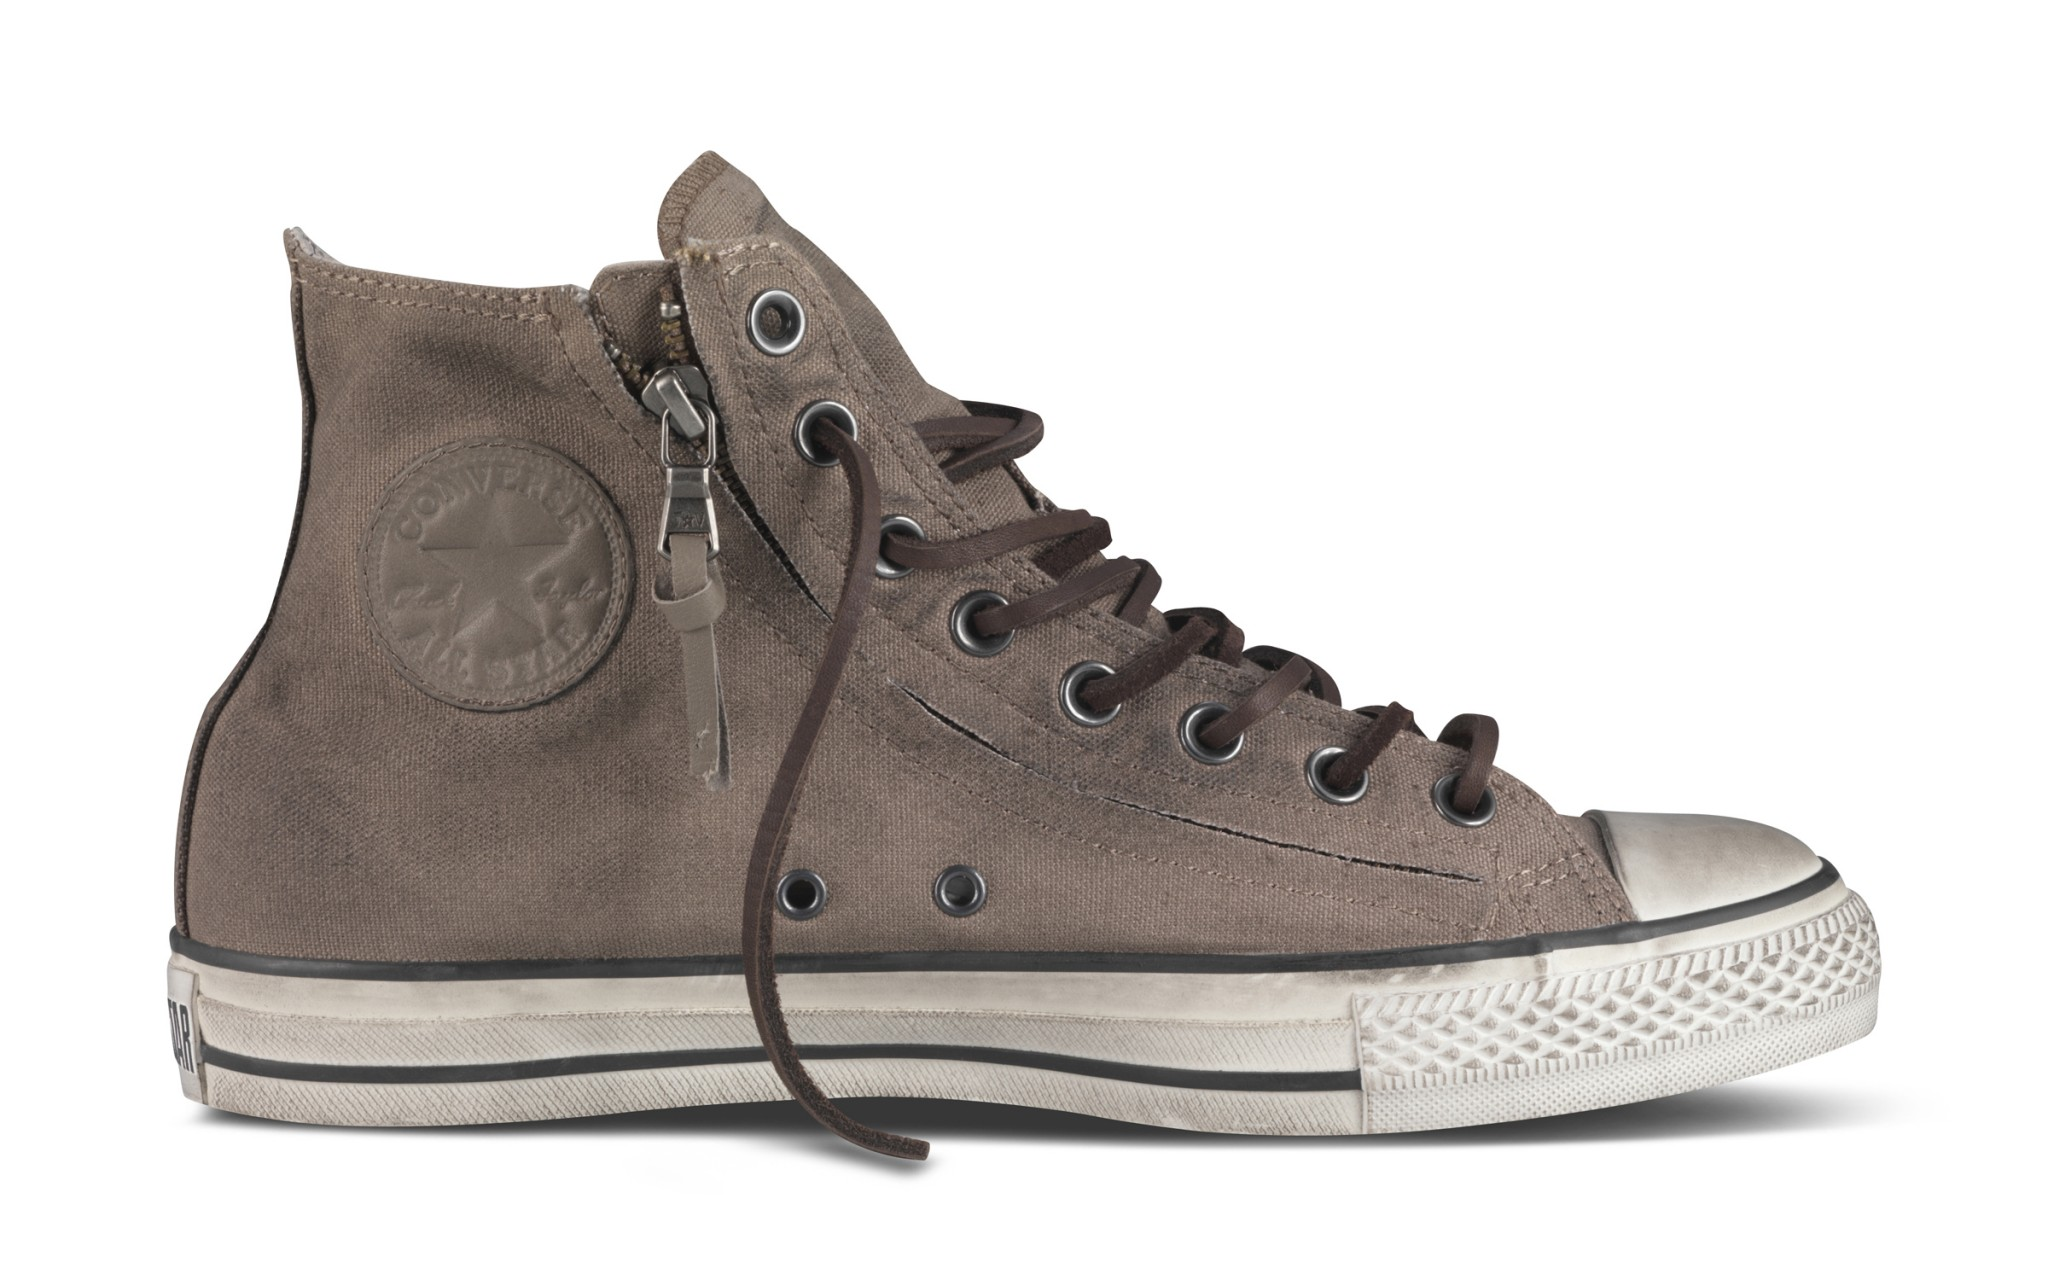 Chuck Taylor All Star Double ZIP_G06052-CT039U-13S02